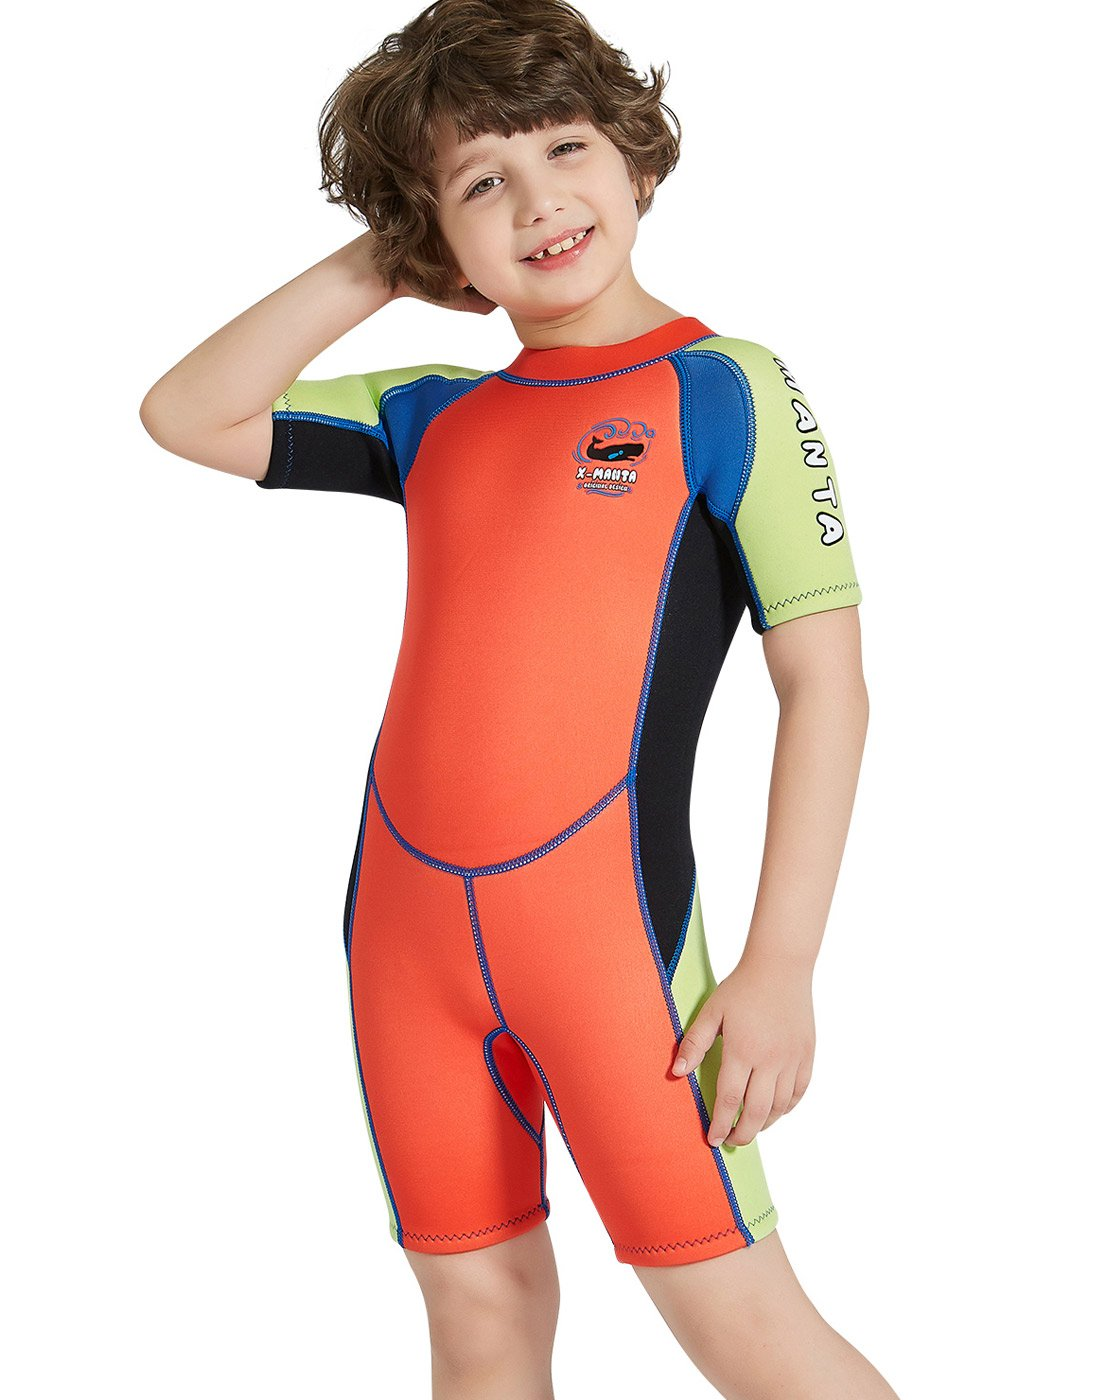 Dive & Sail Kids 2.5 MM Warm Wetsuit One Piece UV保護Shorty Suit B07CJN73Z6 オレンジ L(Height 45''--49'') L(Height 45''--49'')|オレンジ